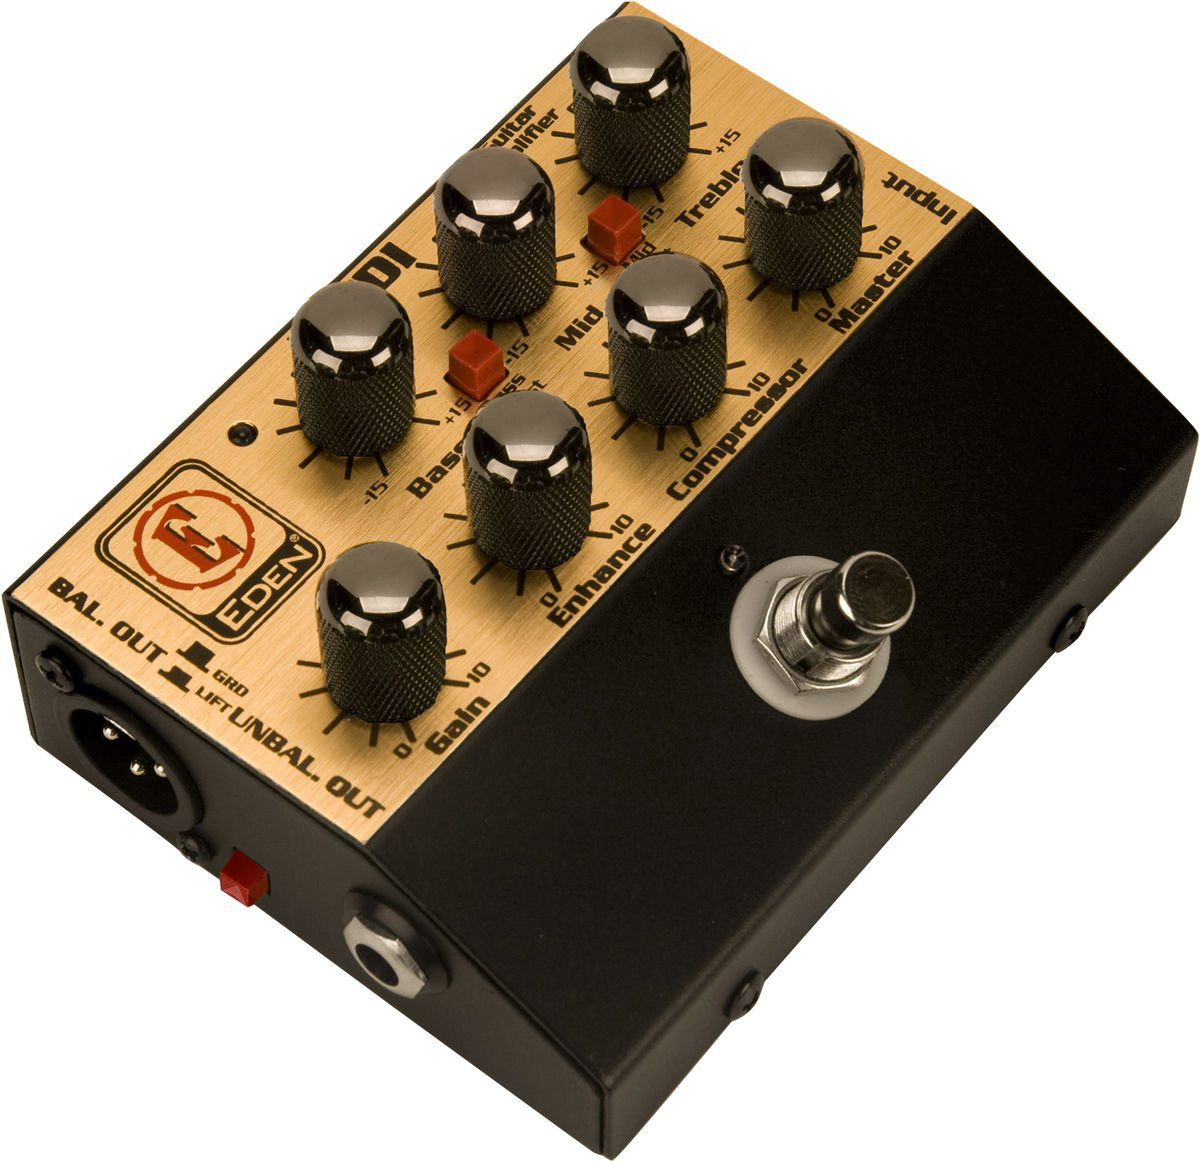 Pedal pre-amplificador com direct box - WTDI-B - EDEN